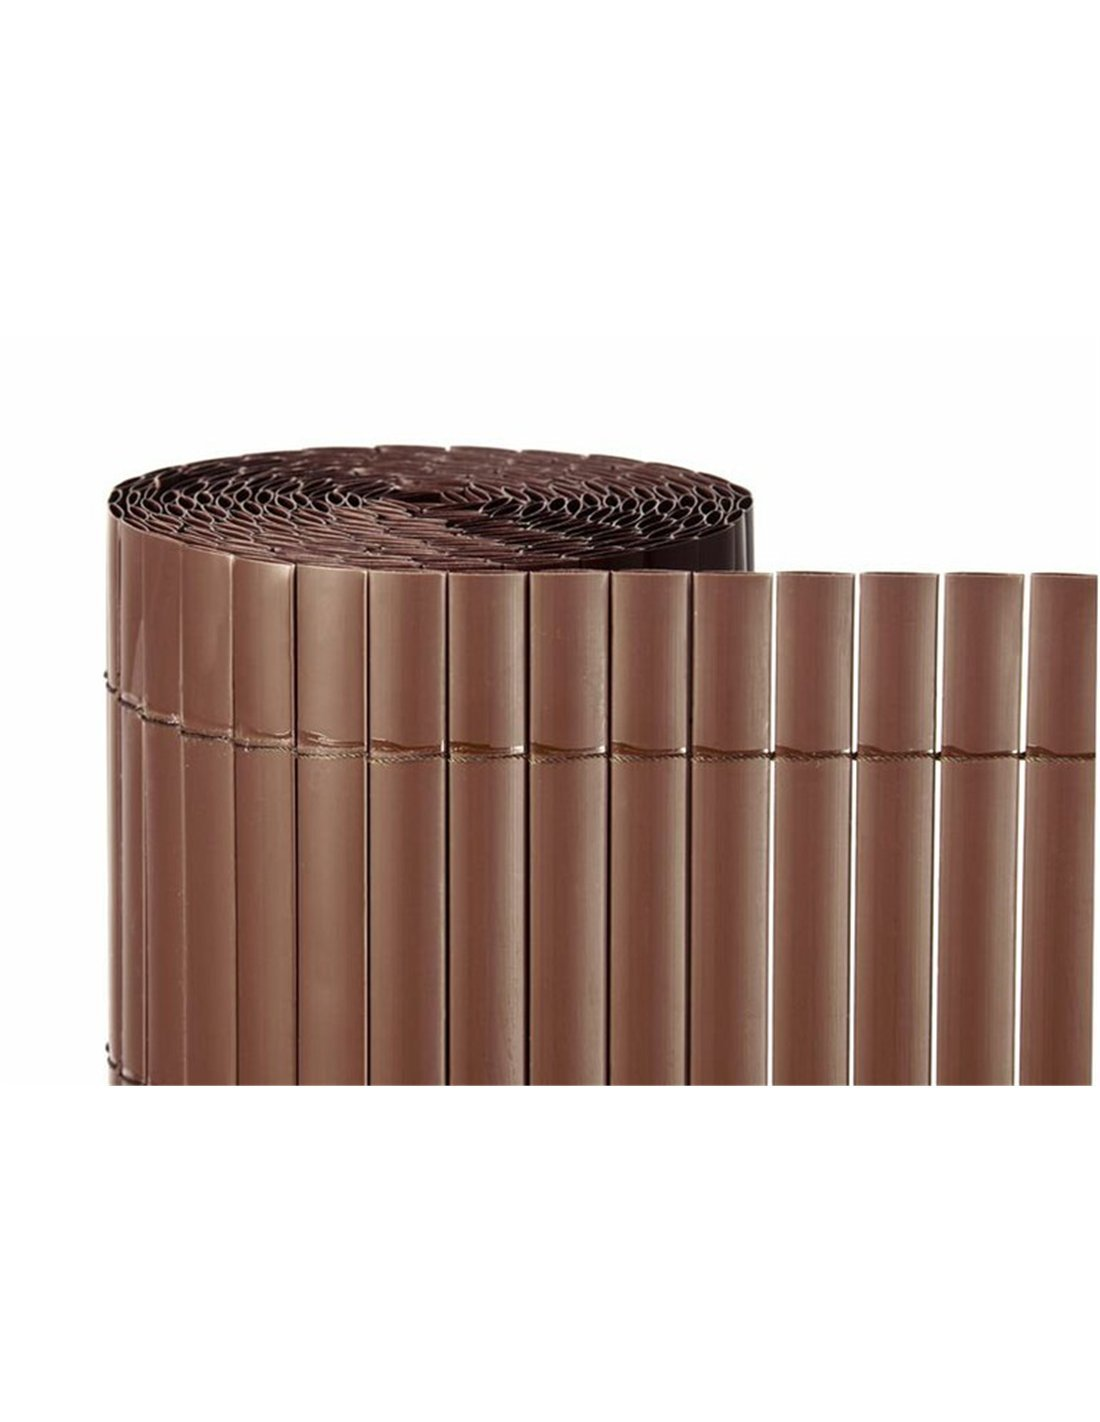 Jardin202 1x3m - CAÑIZO PVC Simple Cara Marron Chocolate 900gr/metro Cuadrado